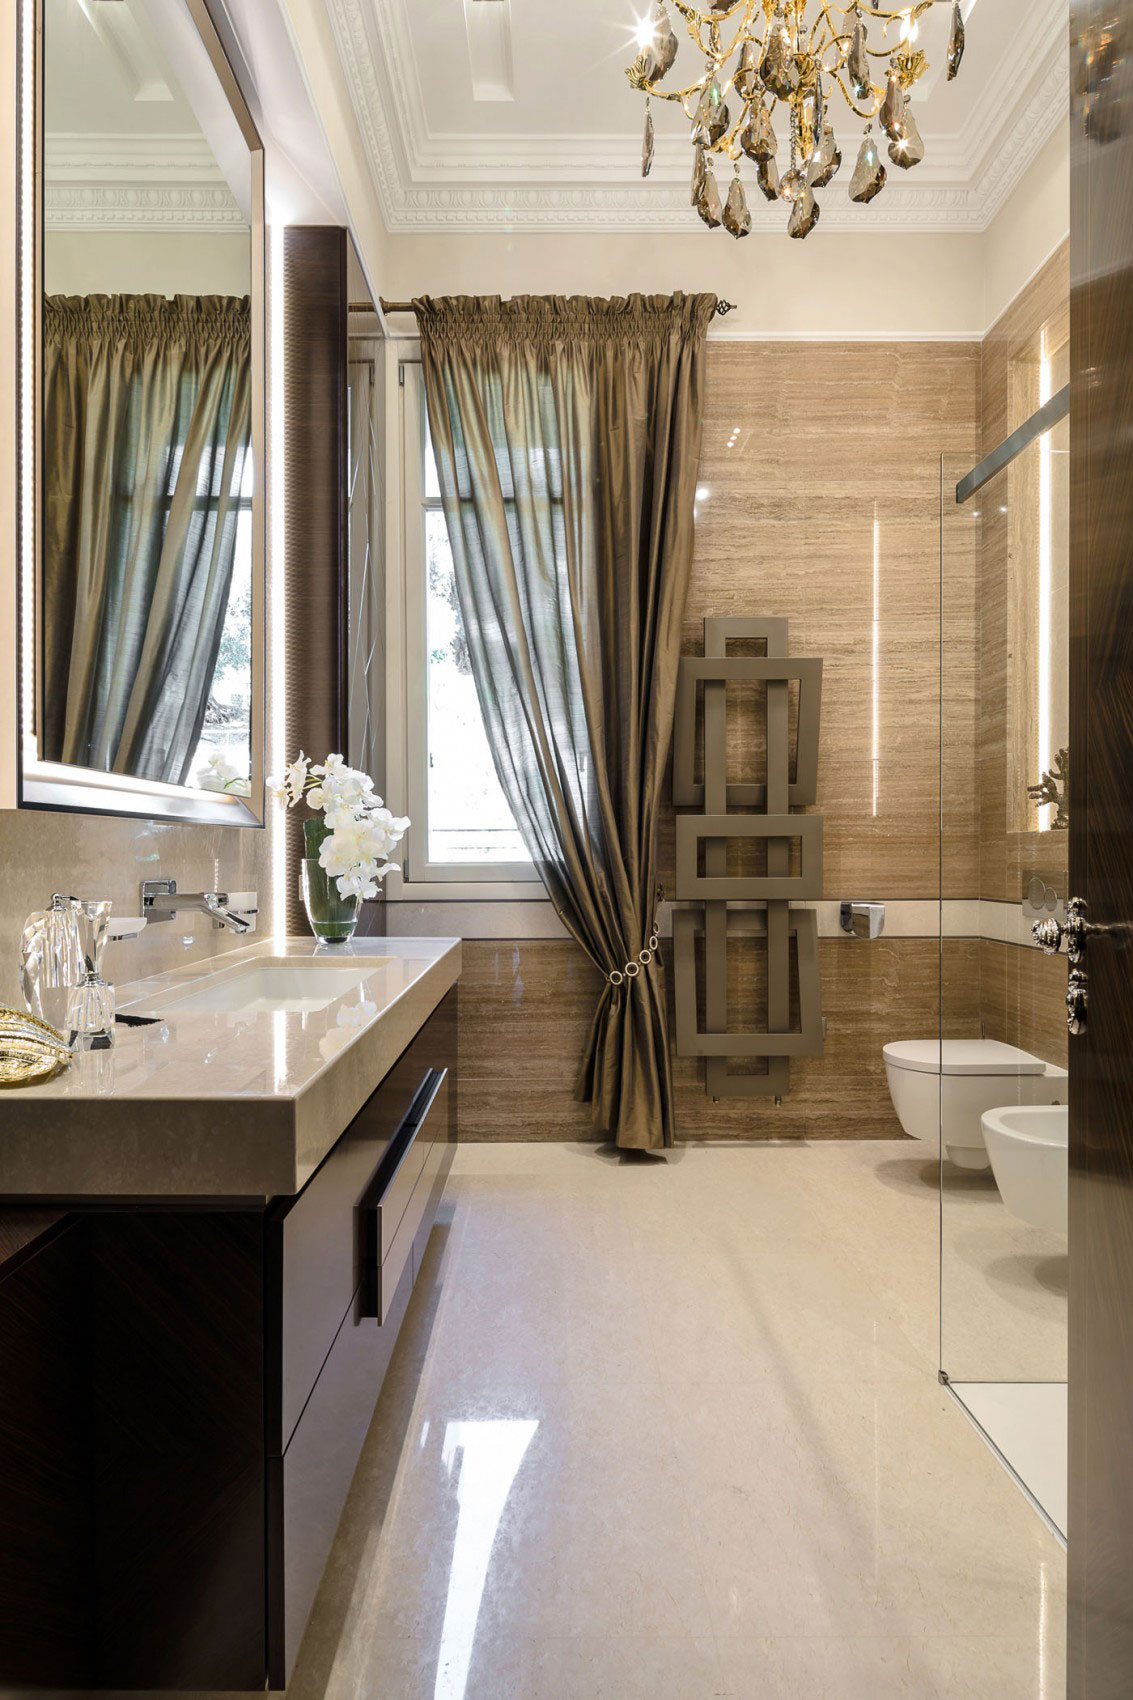 Chic-Apartment-Interior-Design-Created by NG-Studio-13 Chic-Apartment-Interior Design-Created by NG Studio